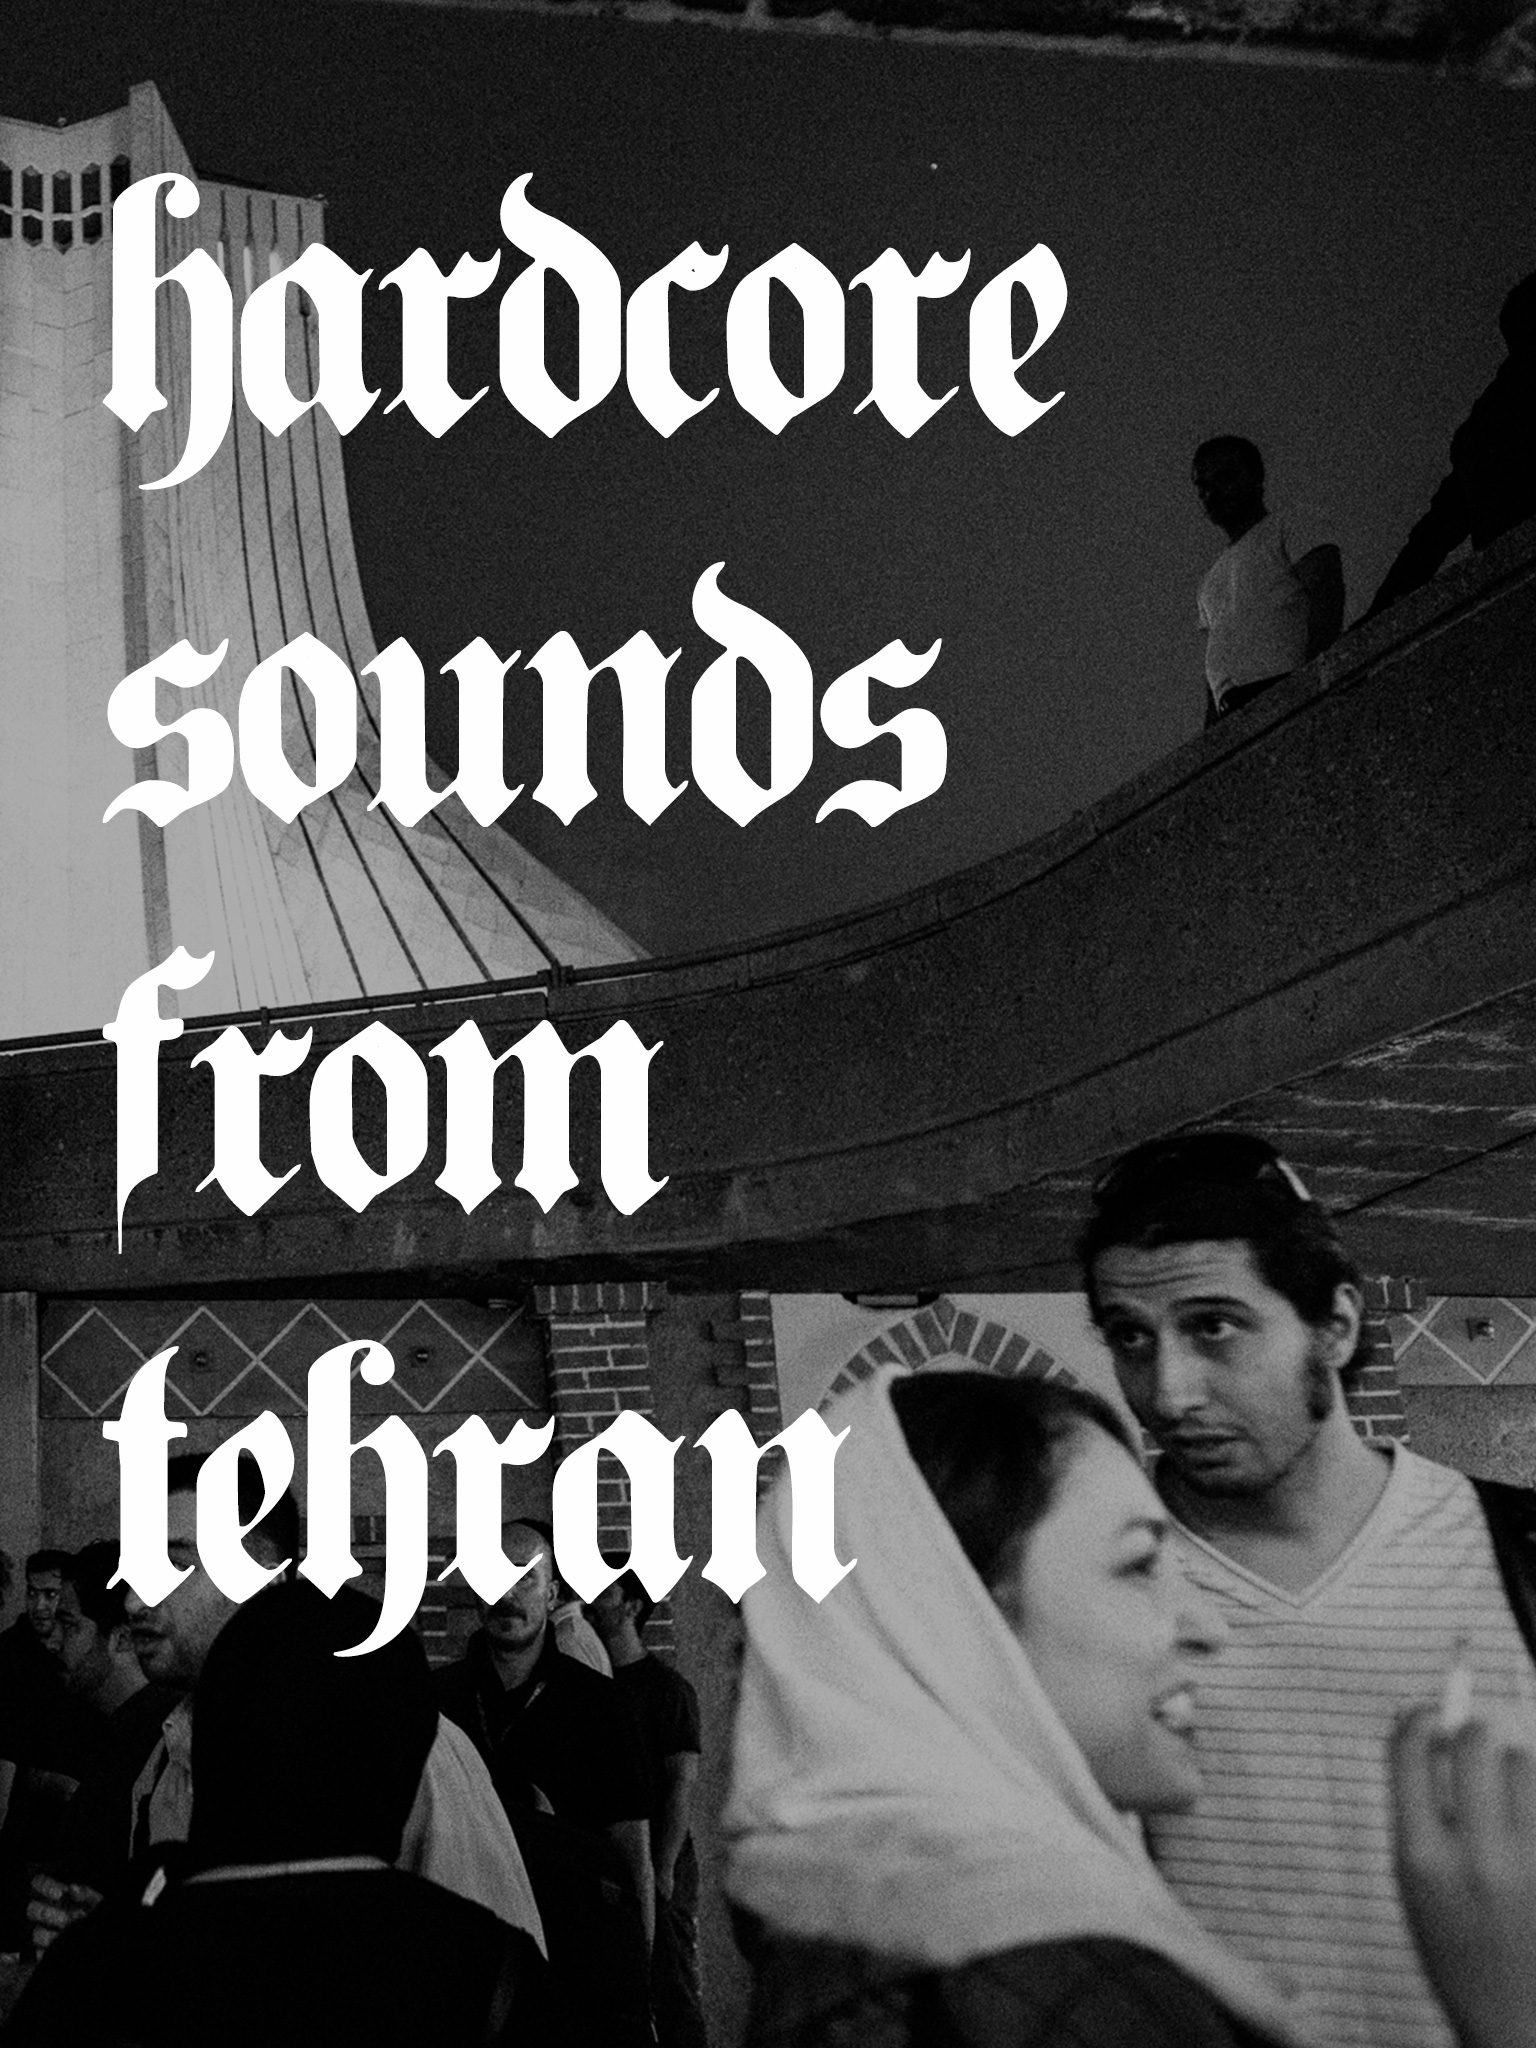 Hardcore sounds from Tehran